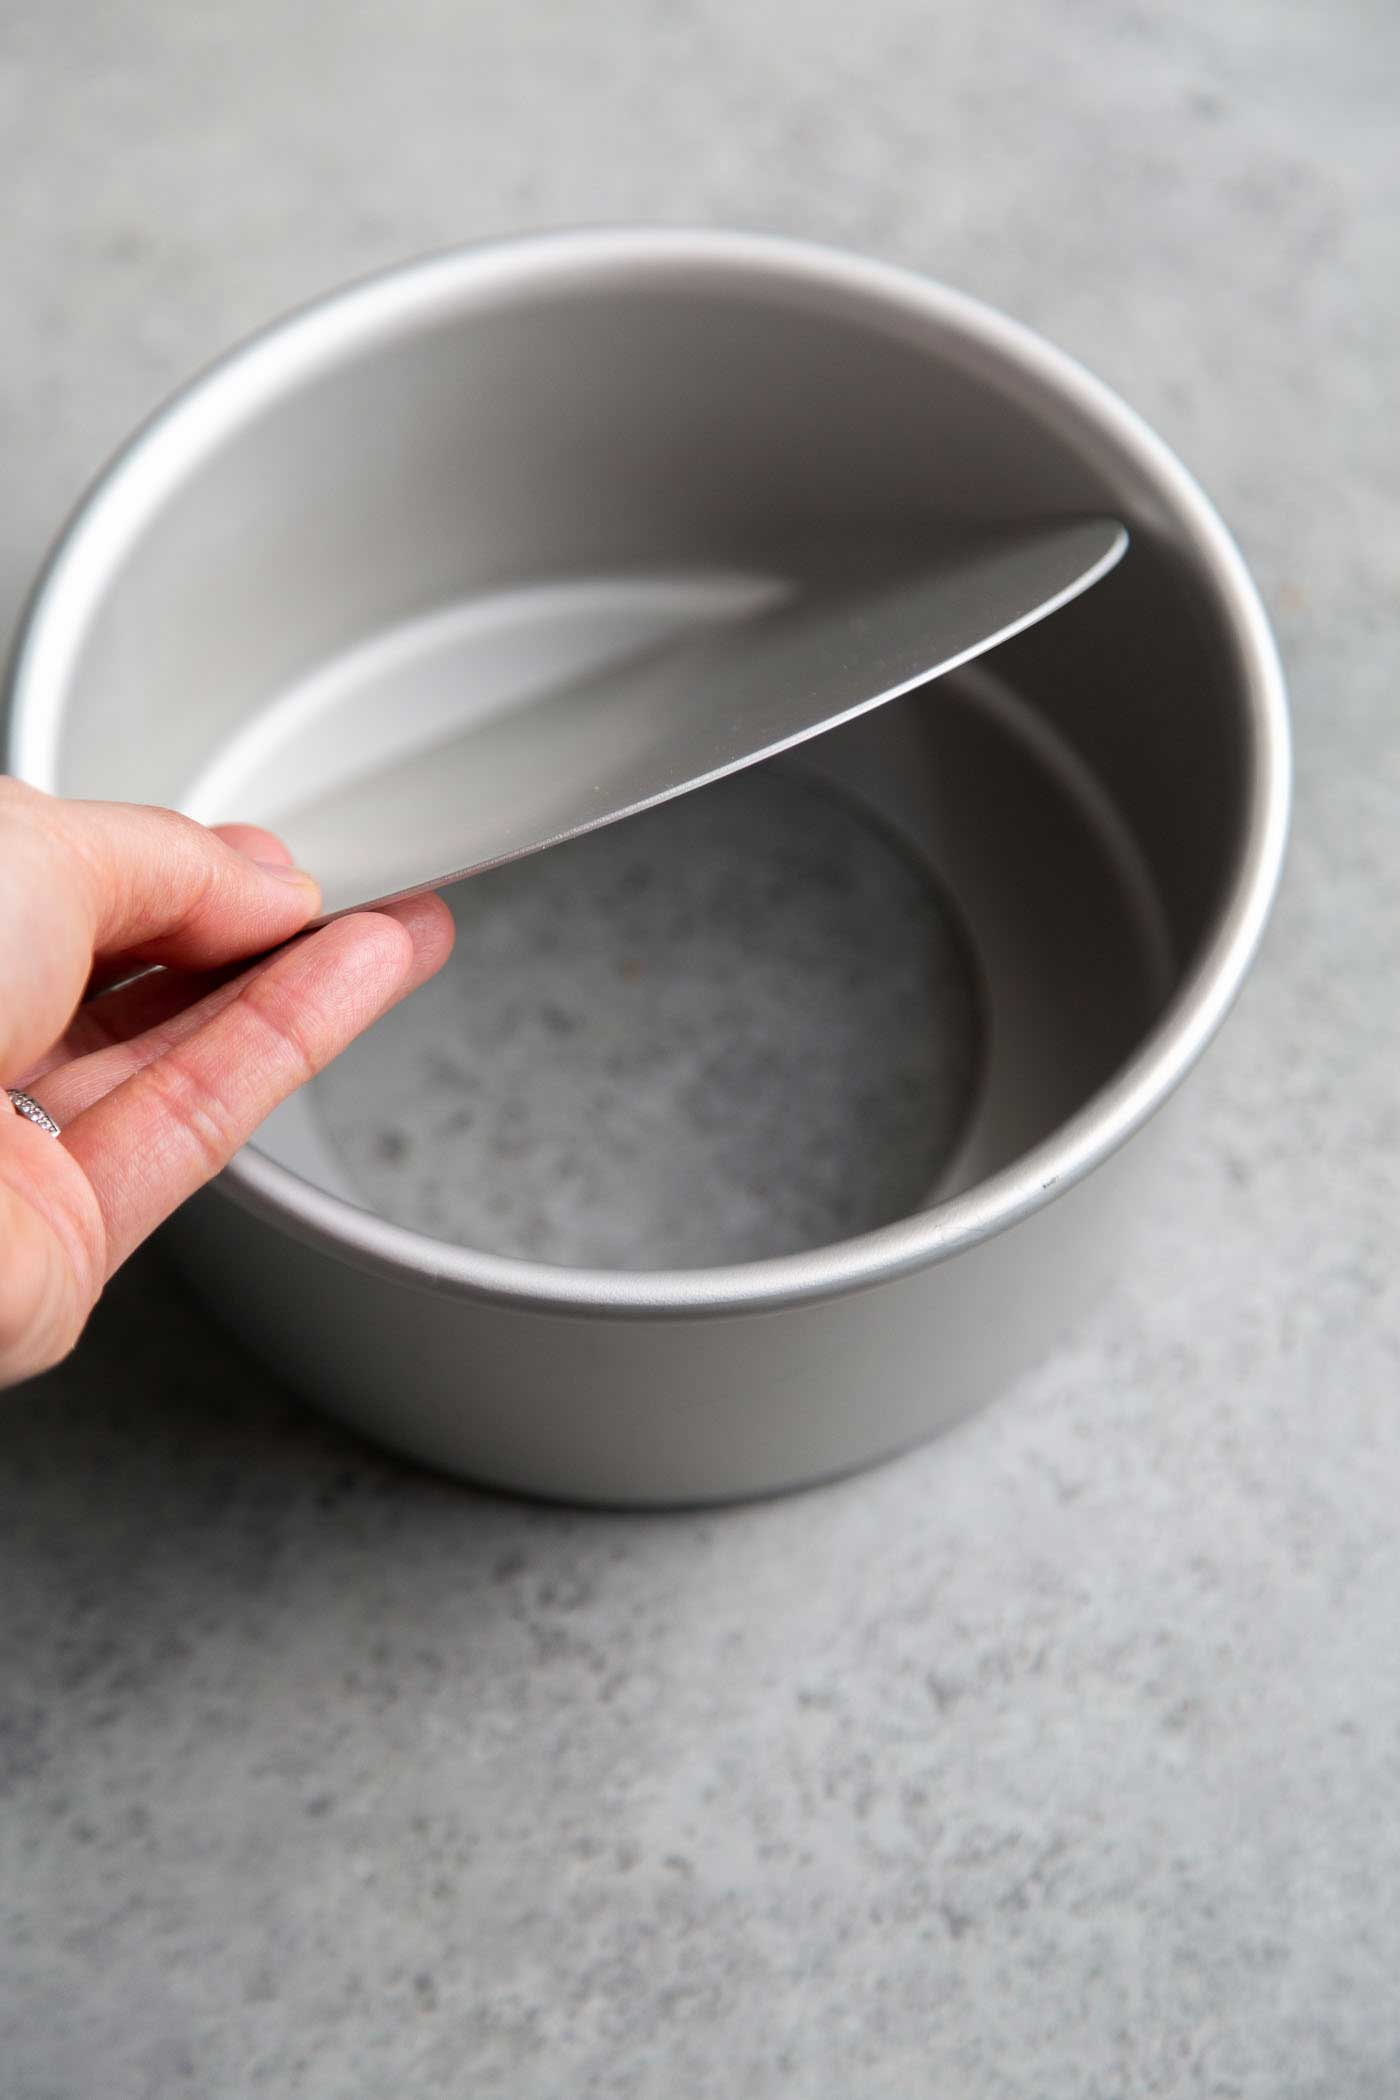 6-inch round cake pan with removable bottom